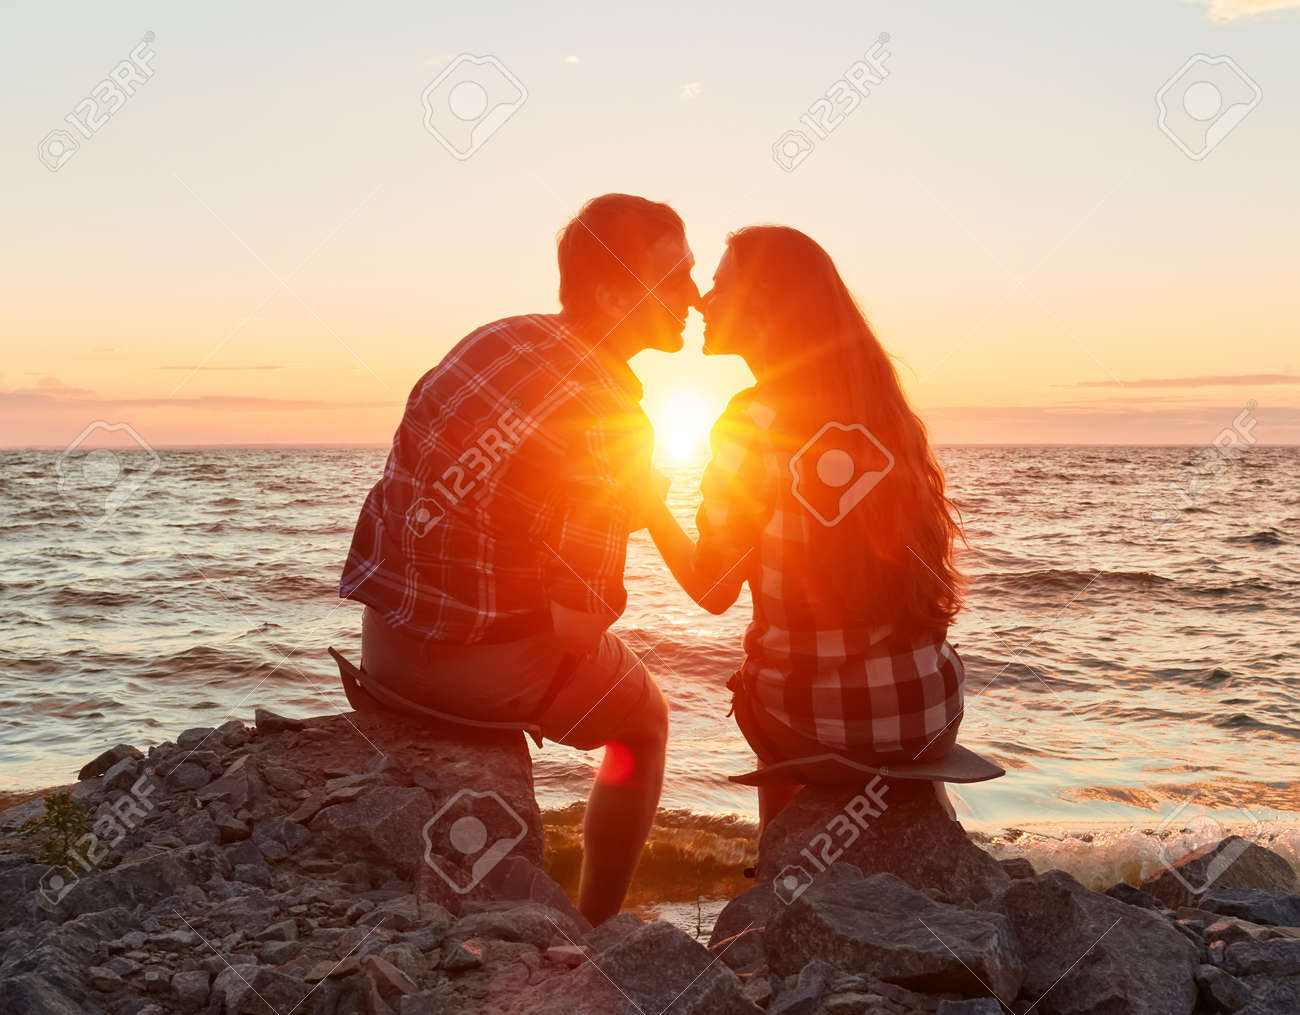 he and she on a nature outing. Romance and love.kiss in the sunset sun - 170687638